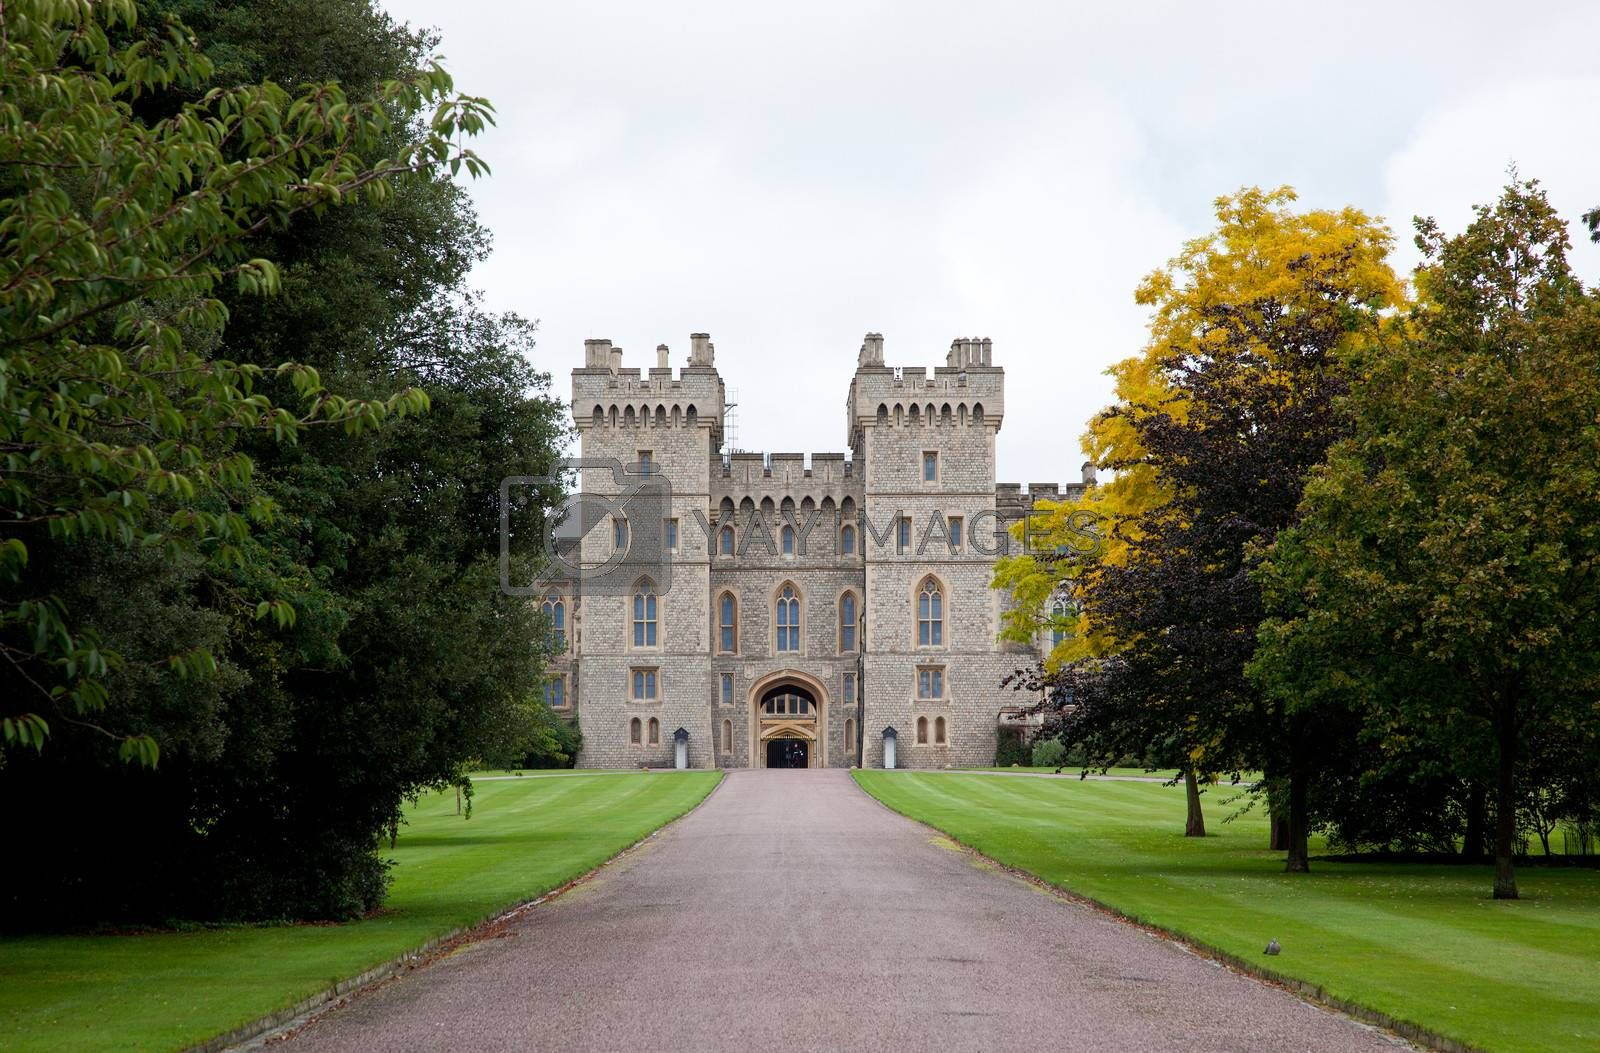 Historic Windsor Castle in the Berkshire in Southern England